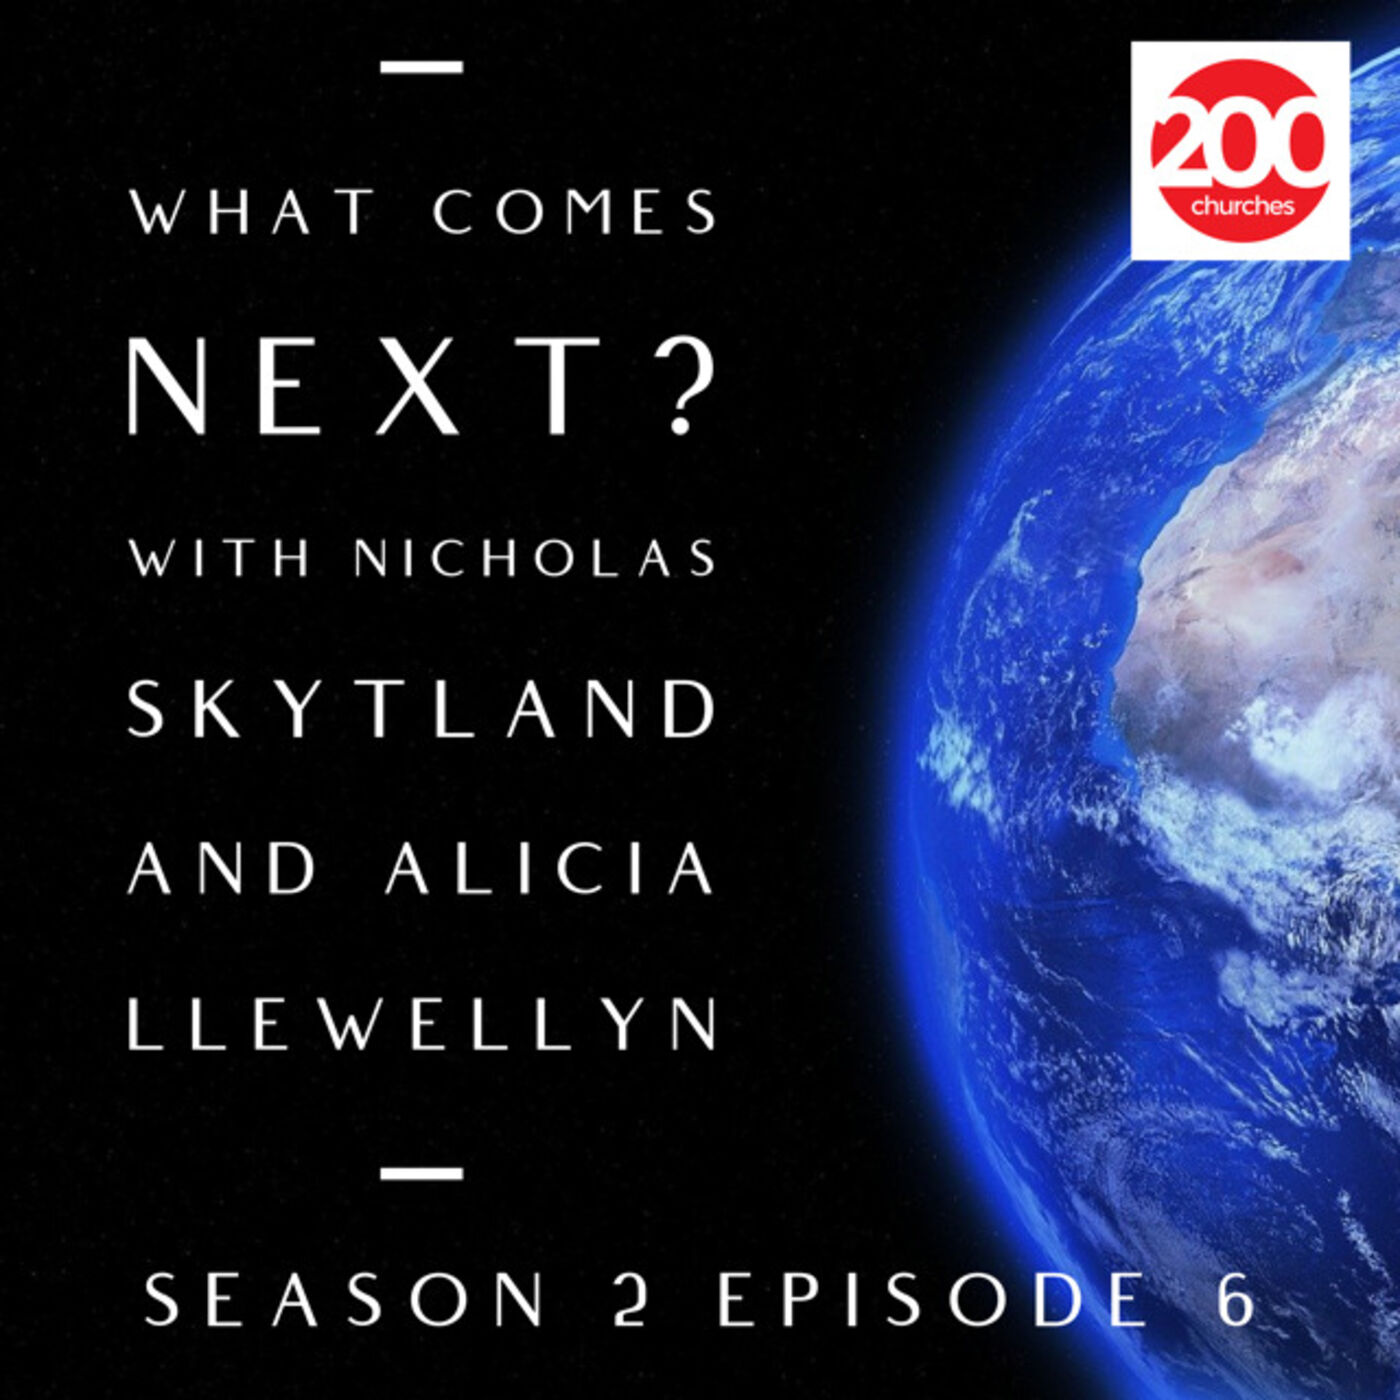 Season 2 Episode 06 - Parallel Episode - What Comes Next? With Nicholas Skytland and Alicia Llewellyn